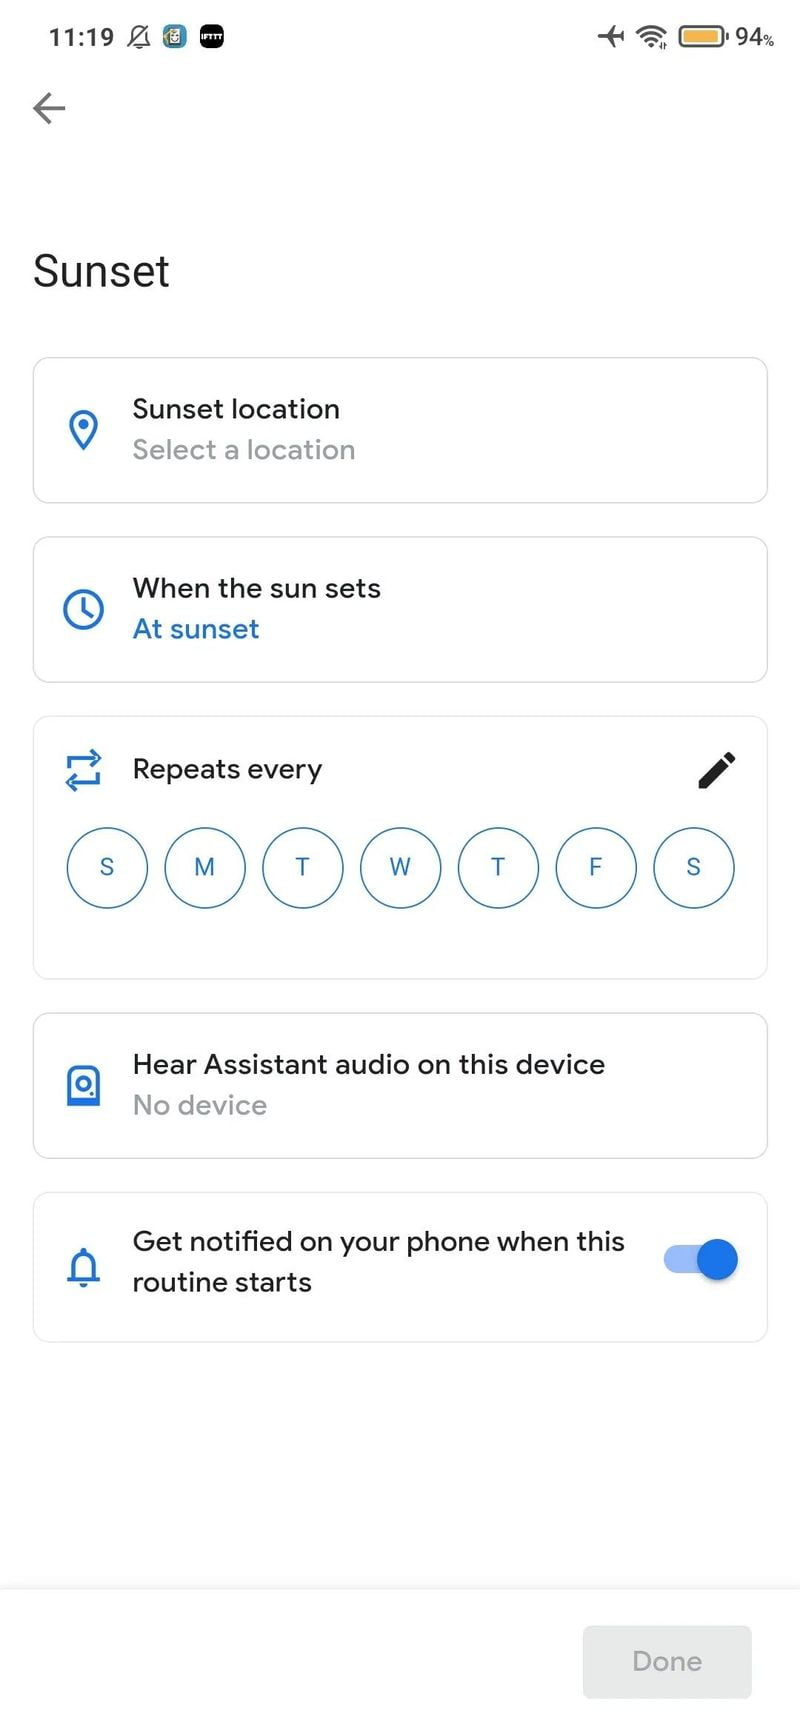 Google Assistant experiments sunrise and sunset routines